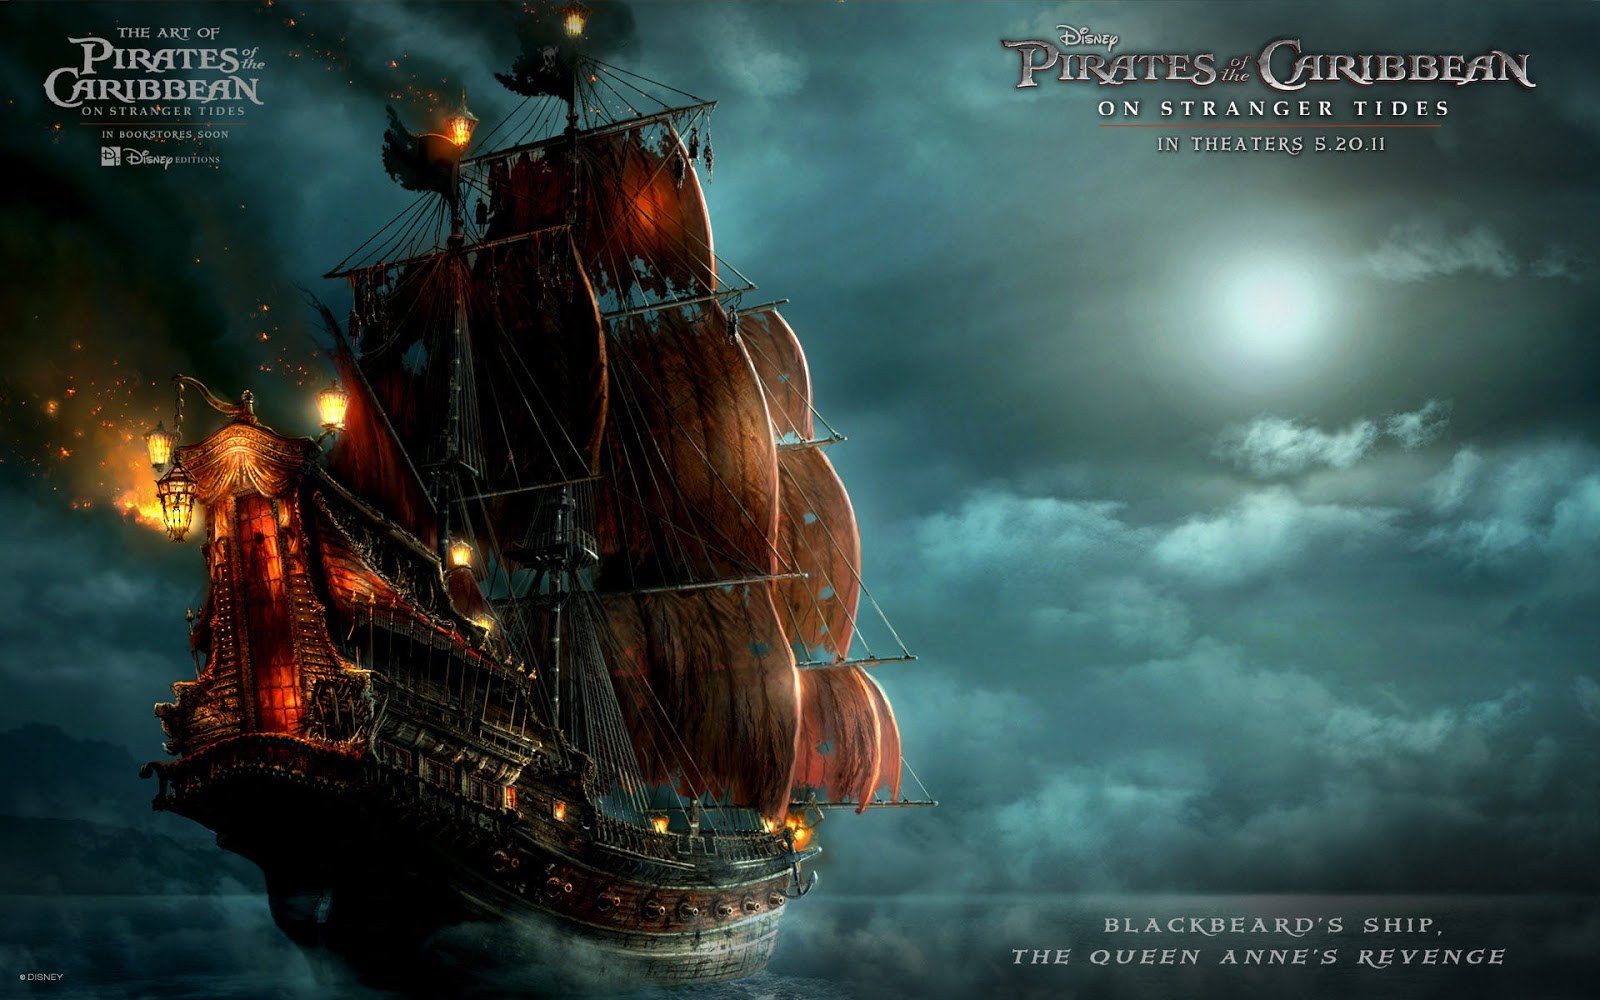 Blackbeards ship pirates of the caribbean 4 full hd desktop wallpapers 1080p - Pirates of the caribbean images hd ...